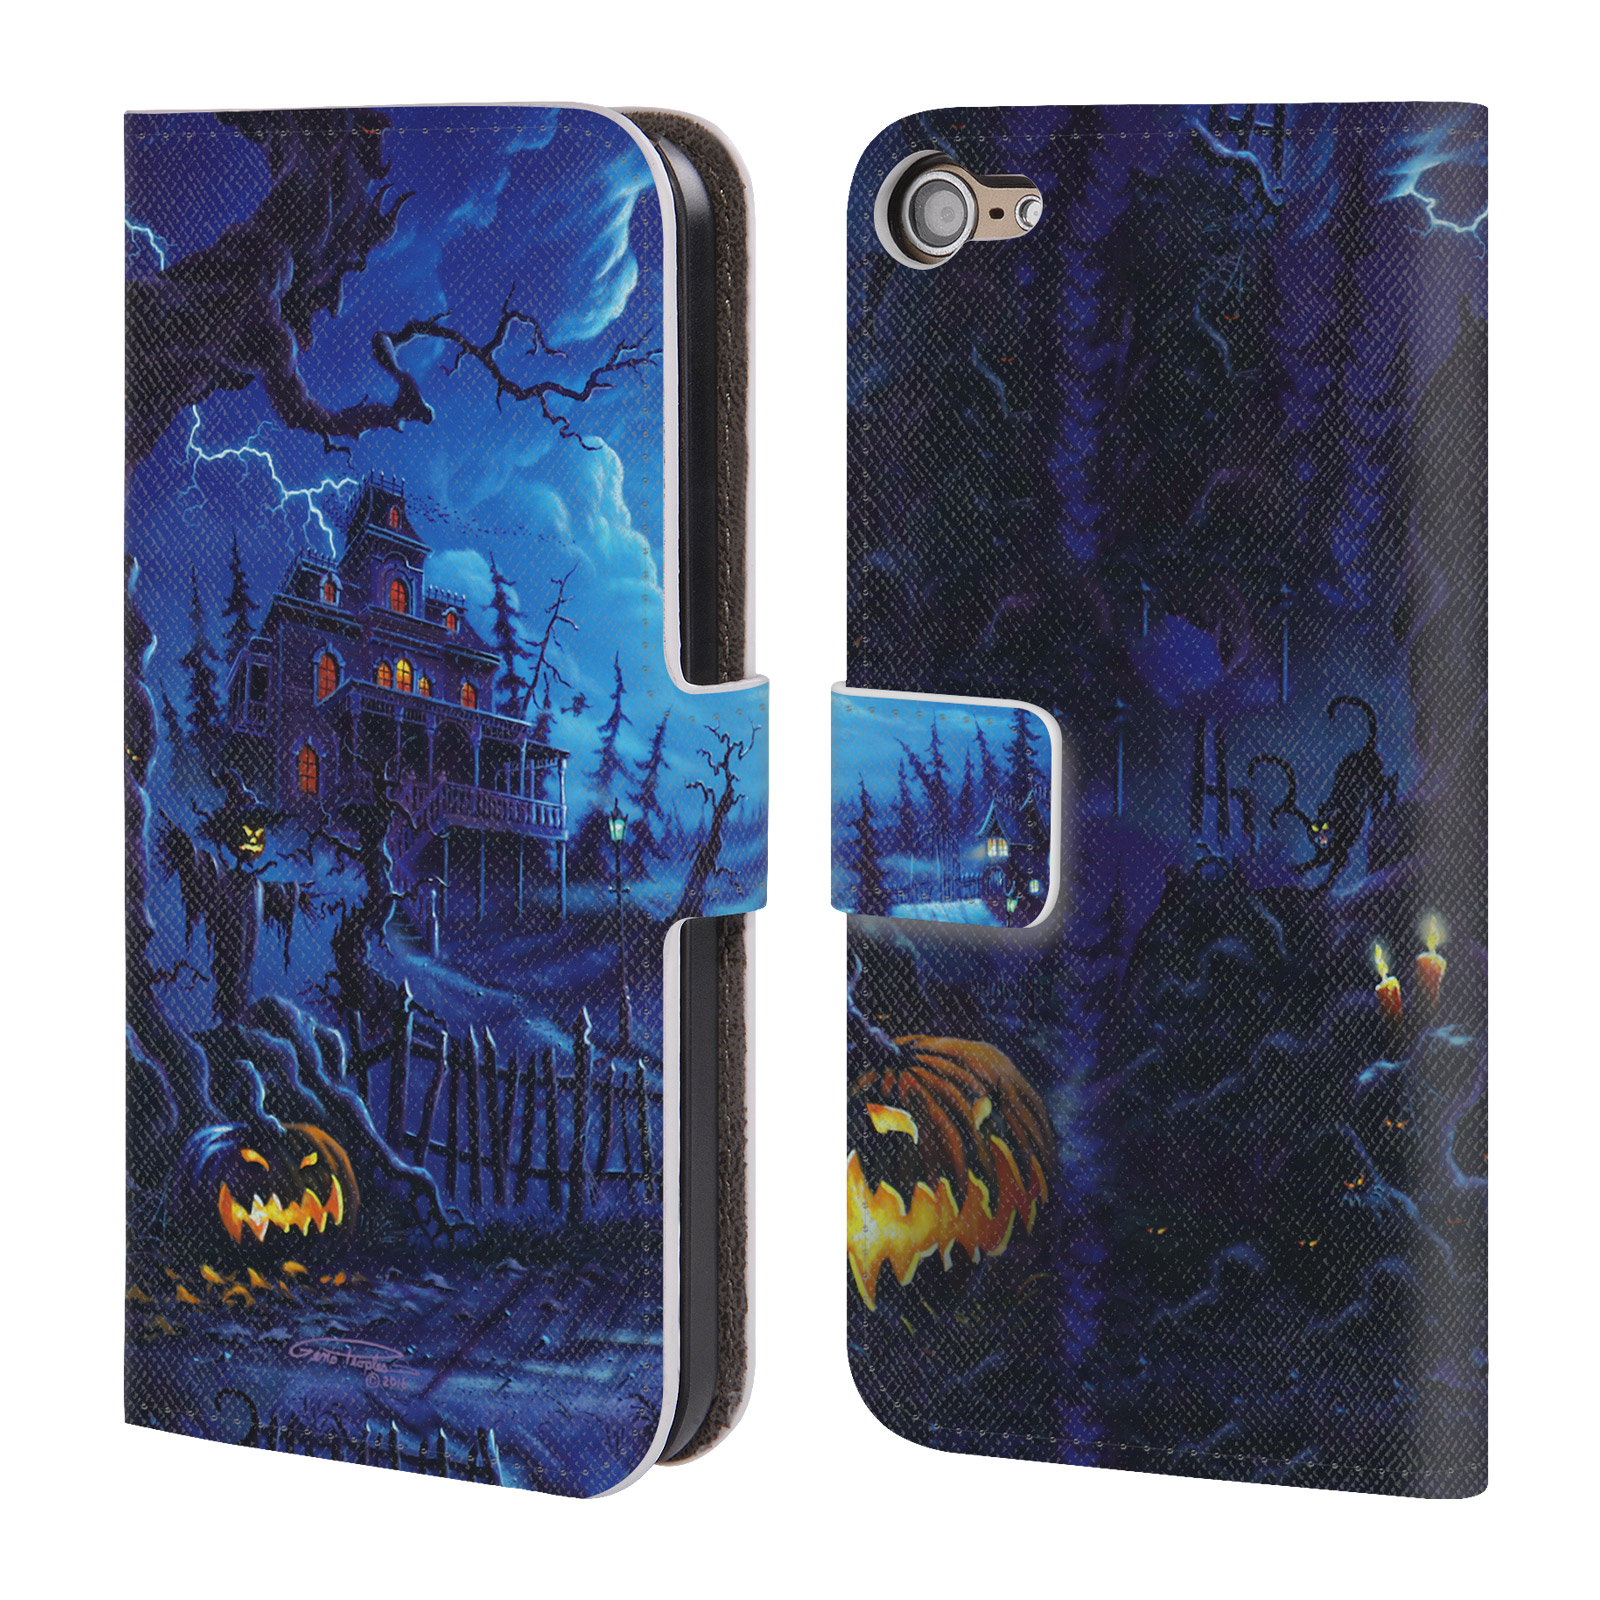 GENO-PEOPLES-ART-HALLOWEEN-COVER-A-PORTAFOGLIO-IN-PELLE-PER-APPLE-iPOD-TOUCH-MP3